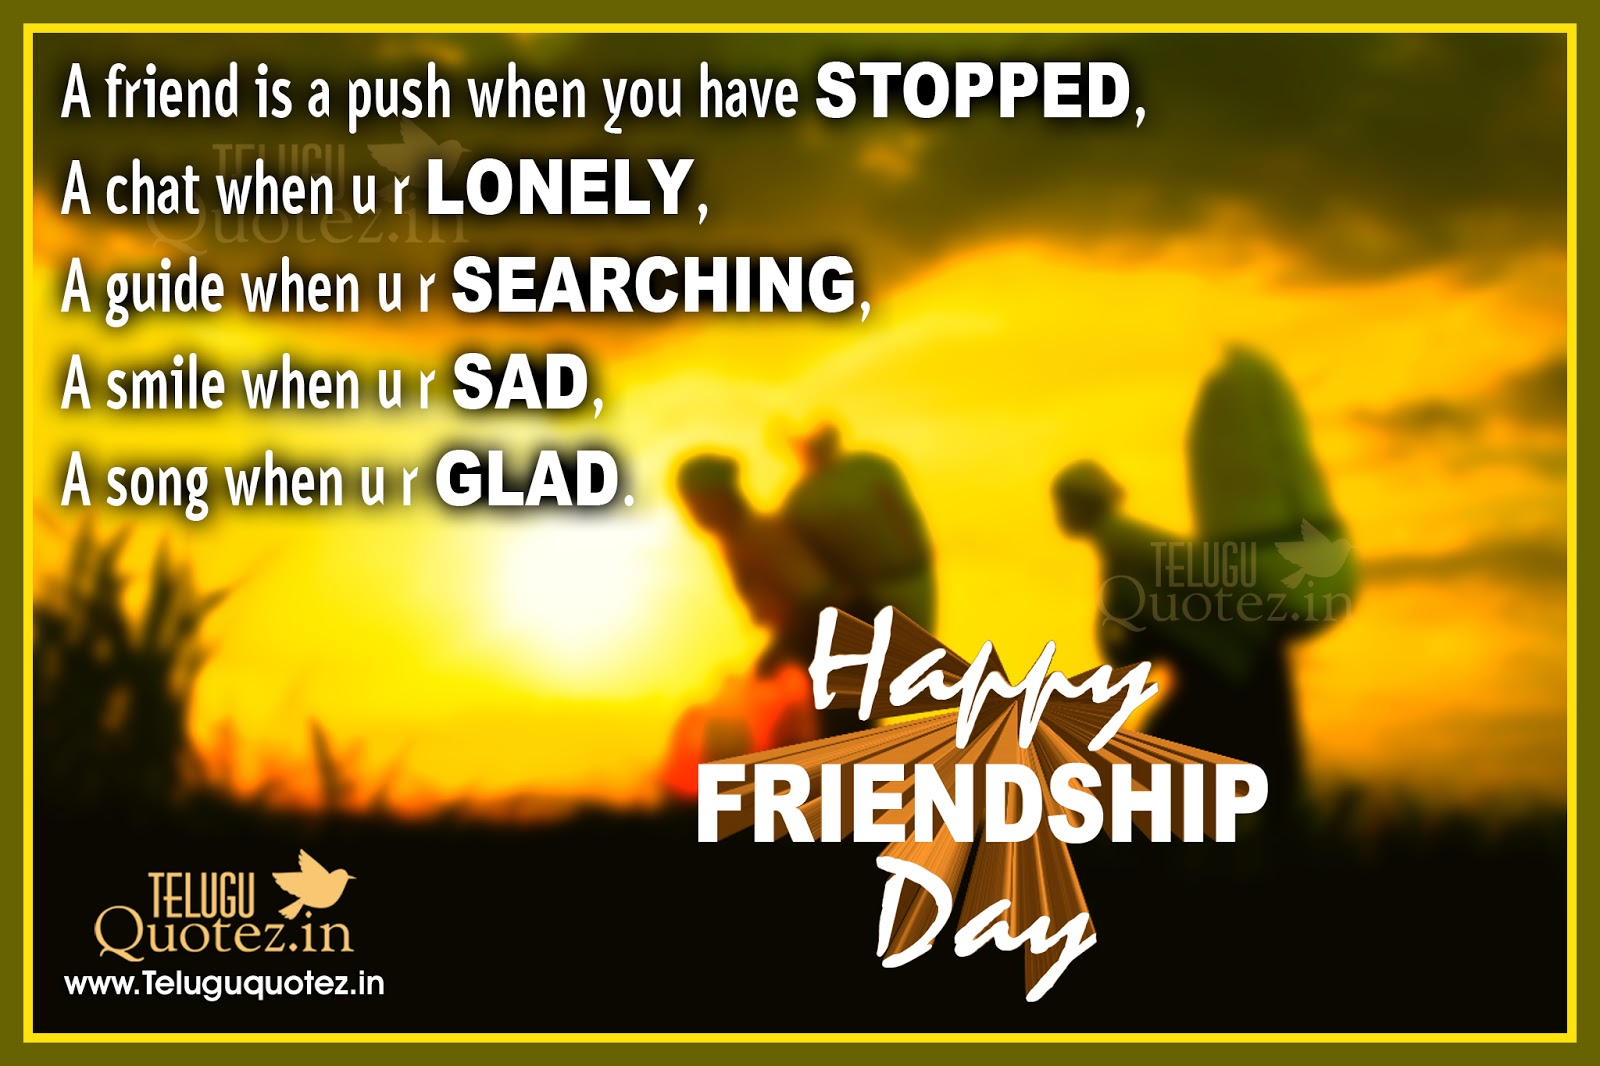 Happy Quotes About Friendship Unique Happy Friendship Day Sms Quotes Images  Teluguquotez.in Telugu